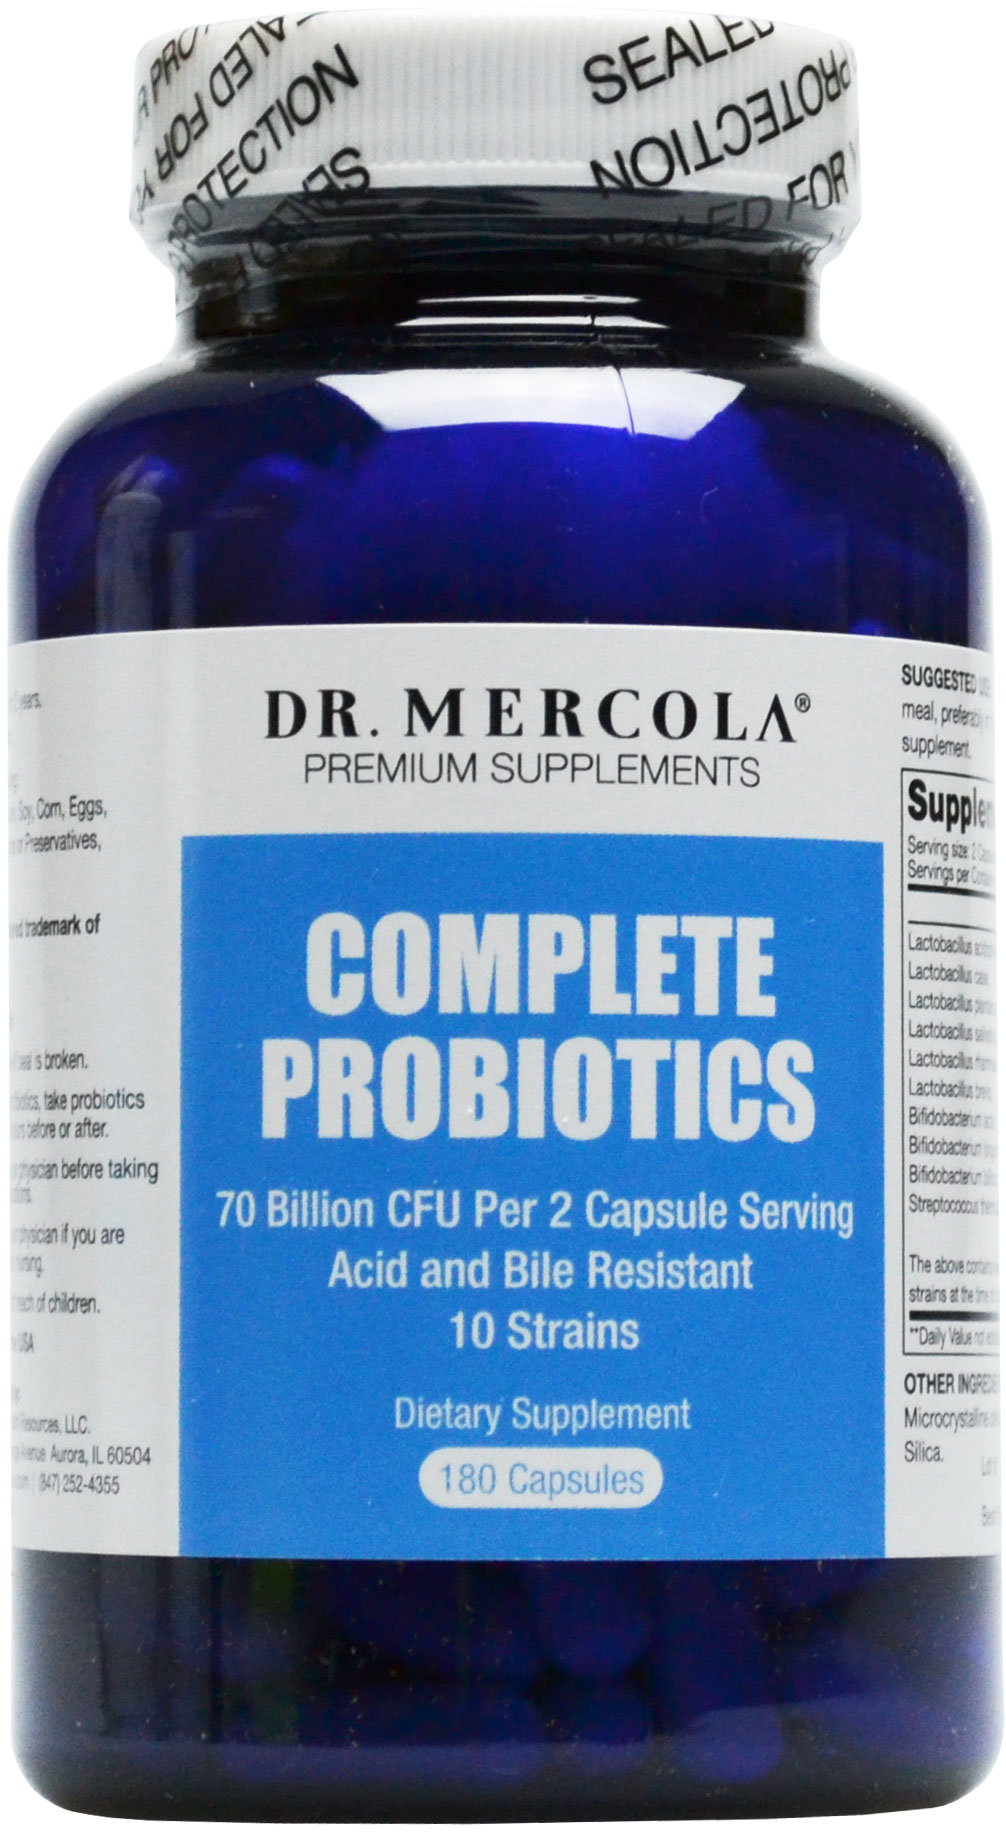 which probiotics relieve constipation?